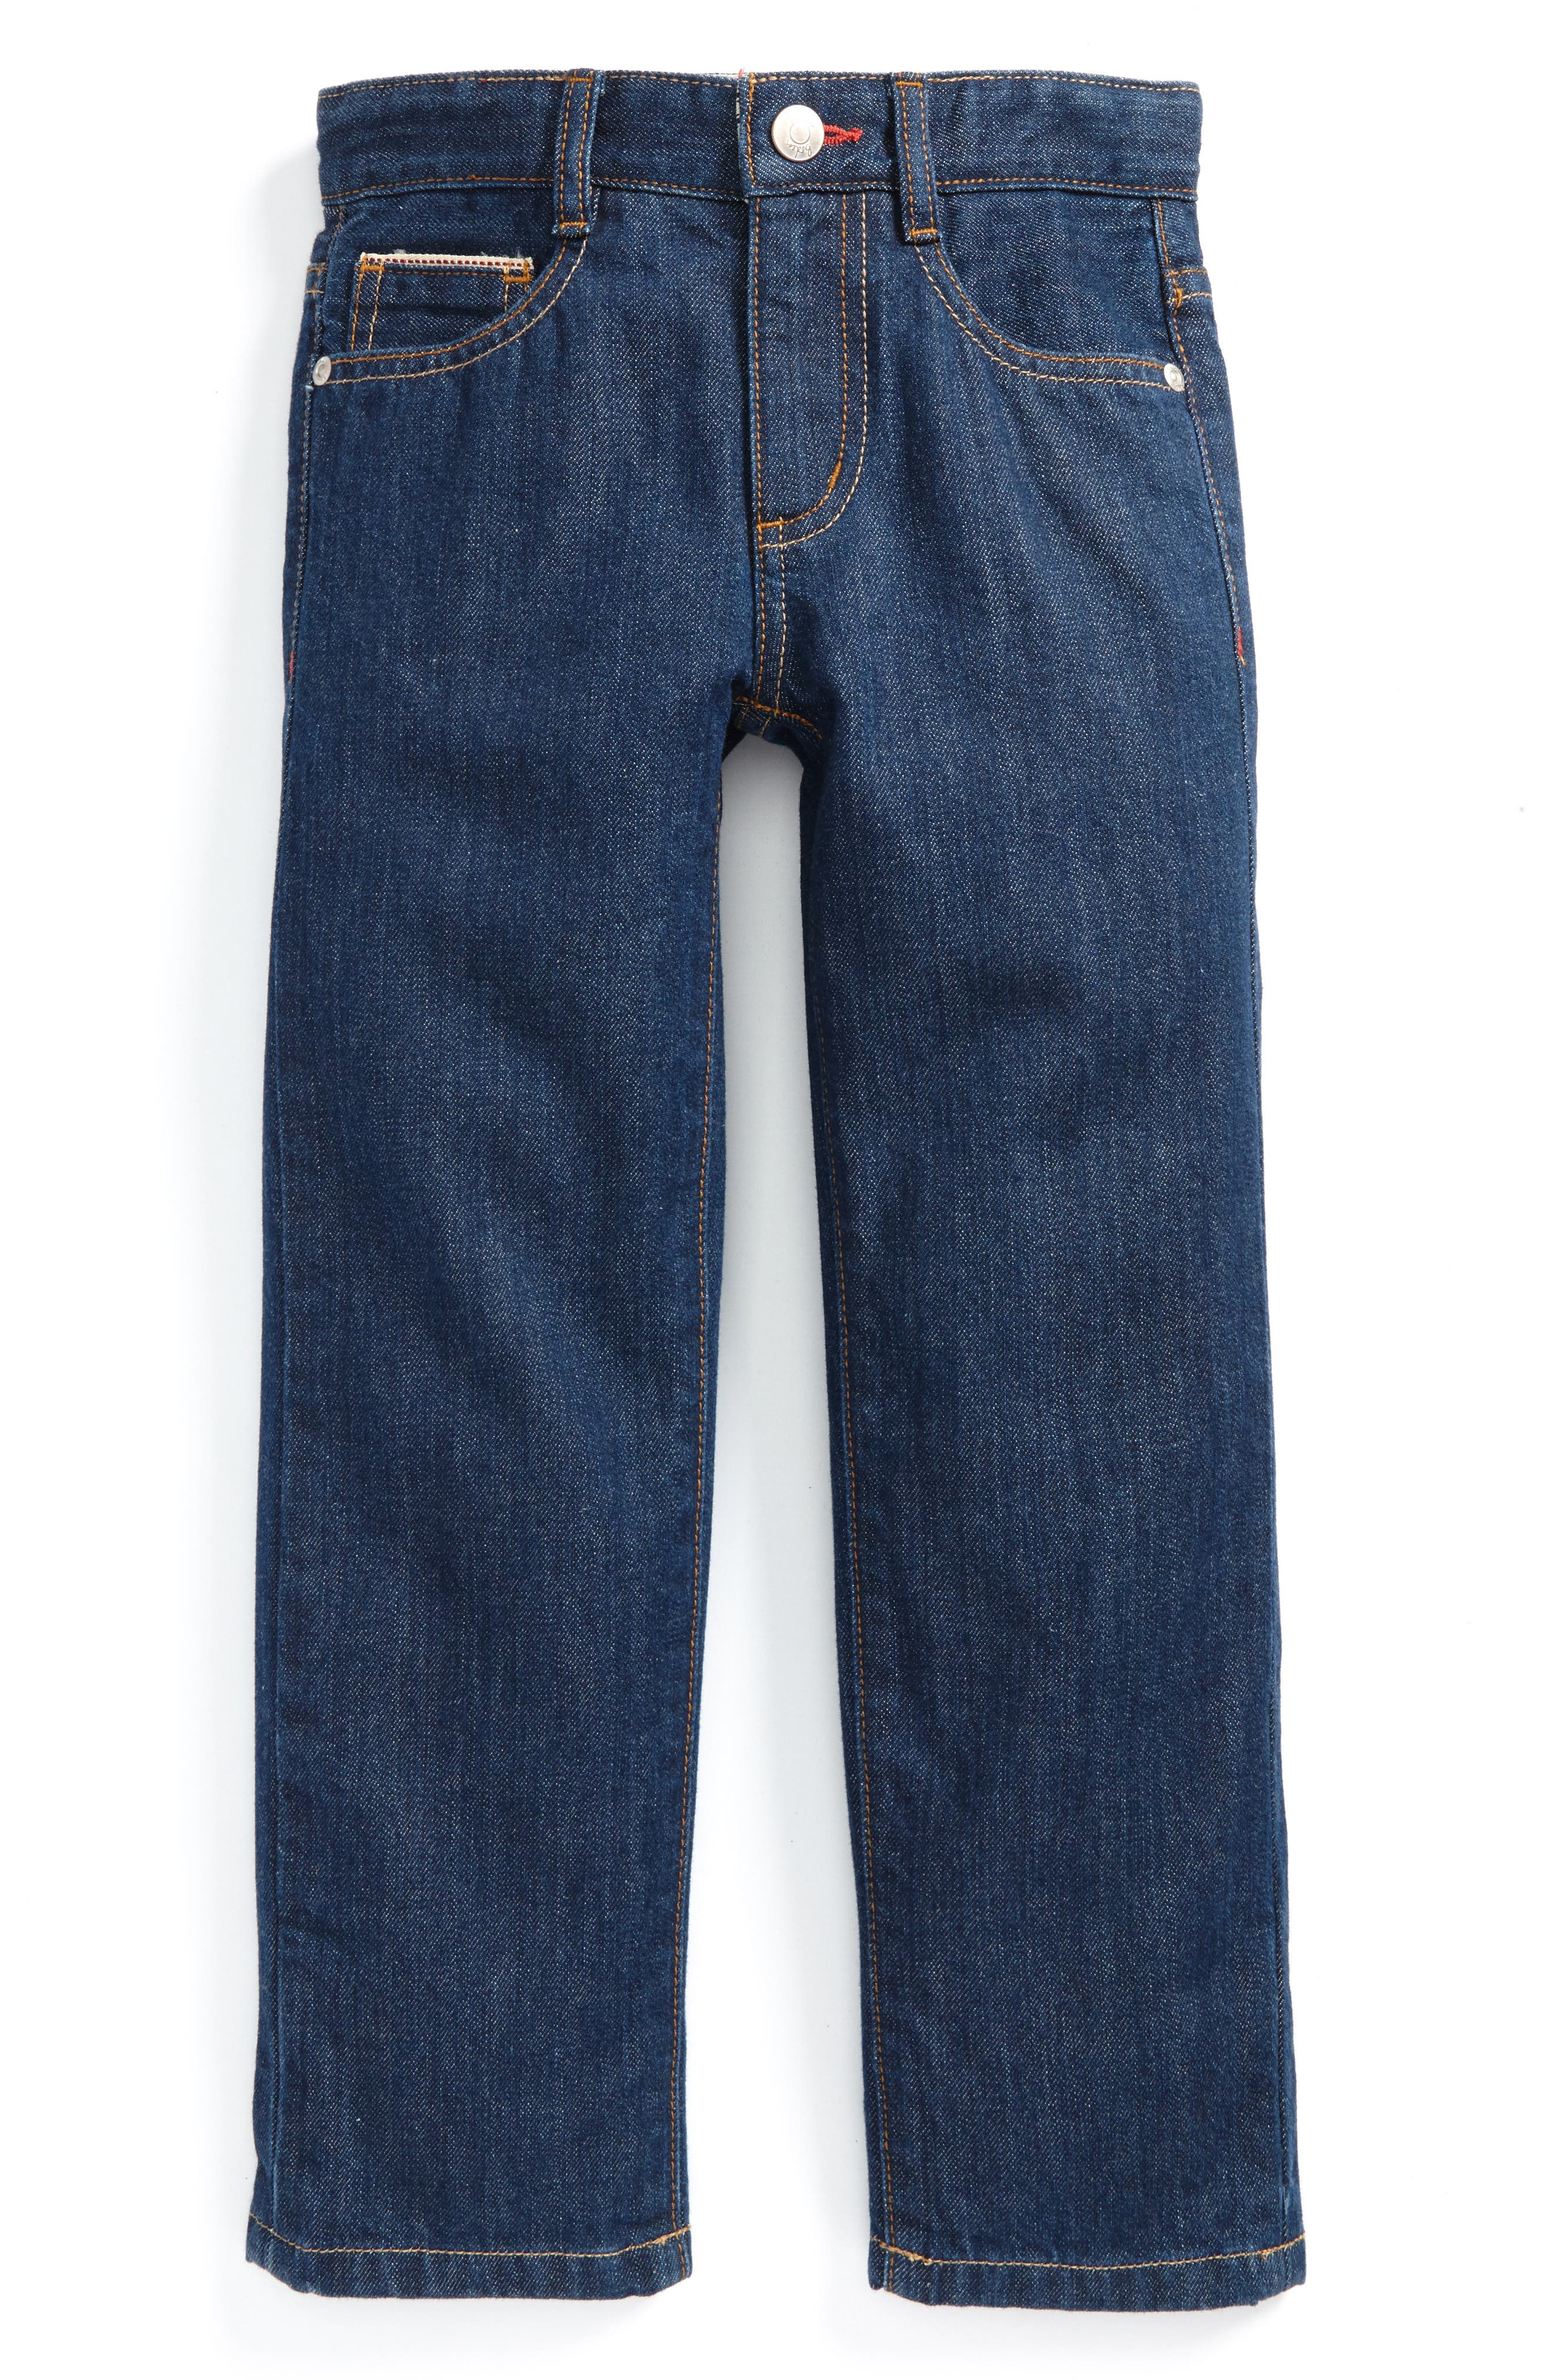 Mini Boden Straight Leg Jeans (Toddler Boys, Little Boys & Big Boys)